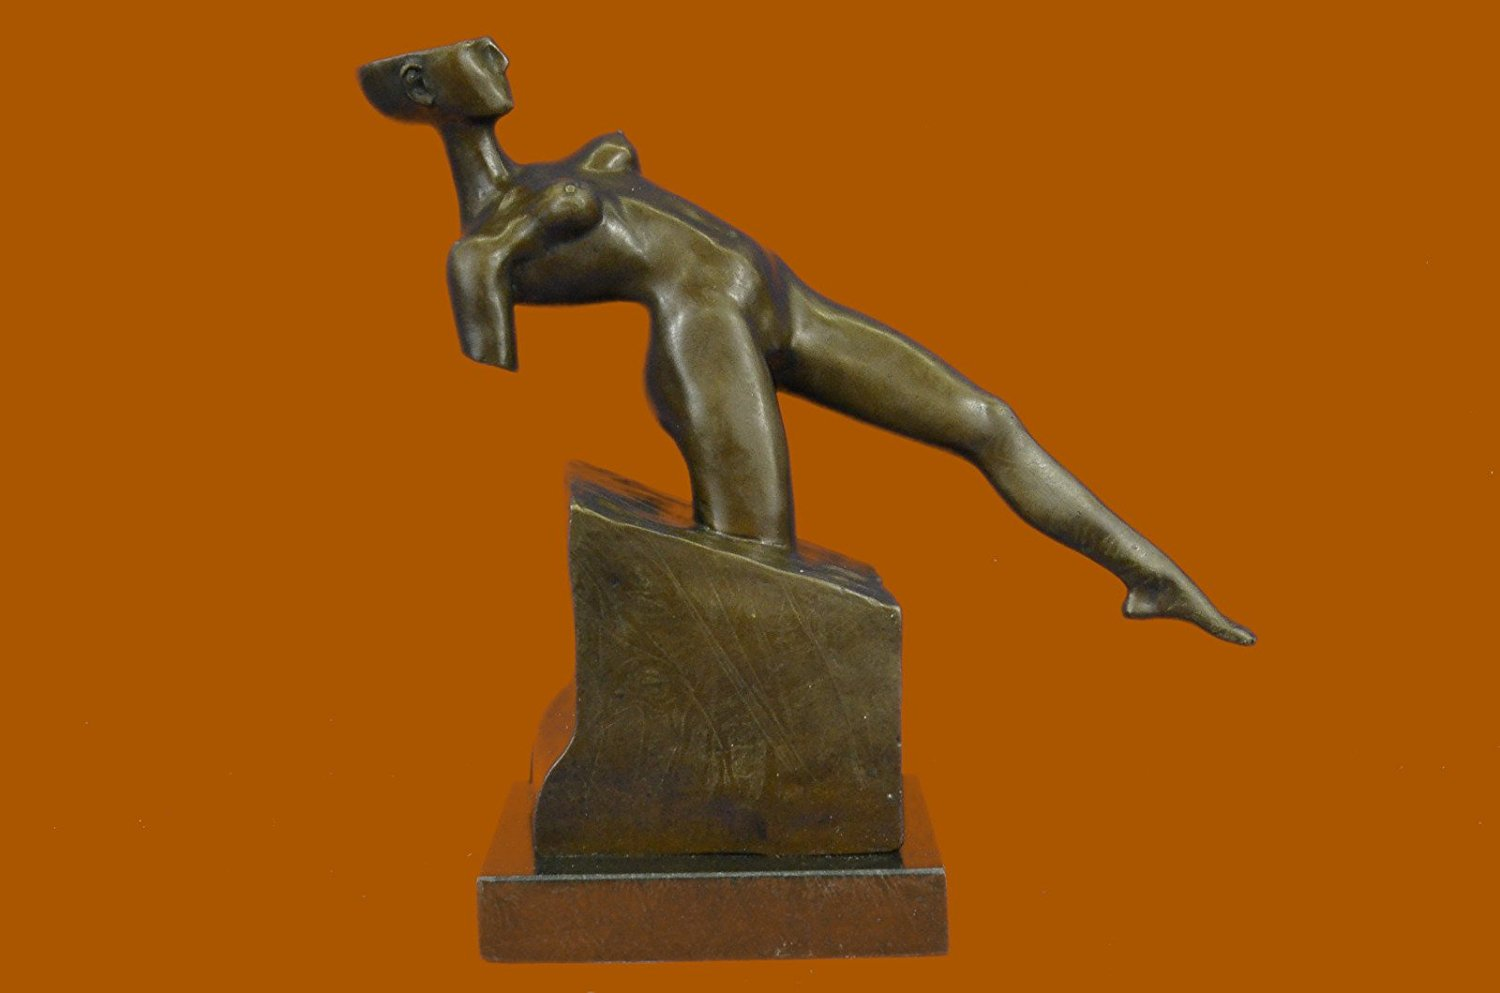 ...Handmade...European Bronze Sculpture Abstract Erotic Sensual Nude Woman By Rodin Modern Art (DS-566-UK) Bronze Sculpture Statues Figurine Nude Office & Home Décor Collectibles Sale Deal Gifts